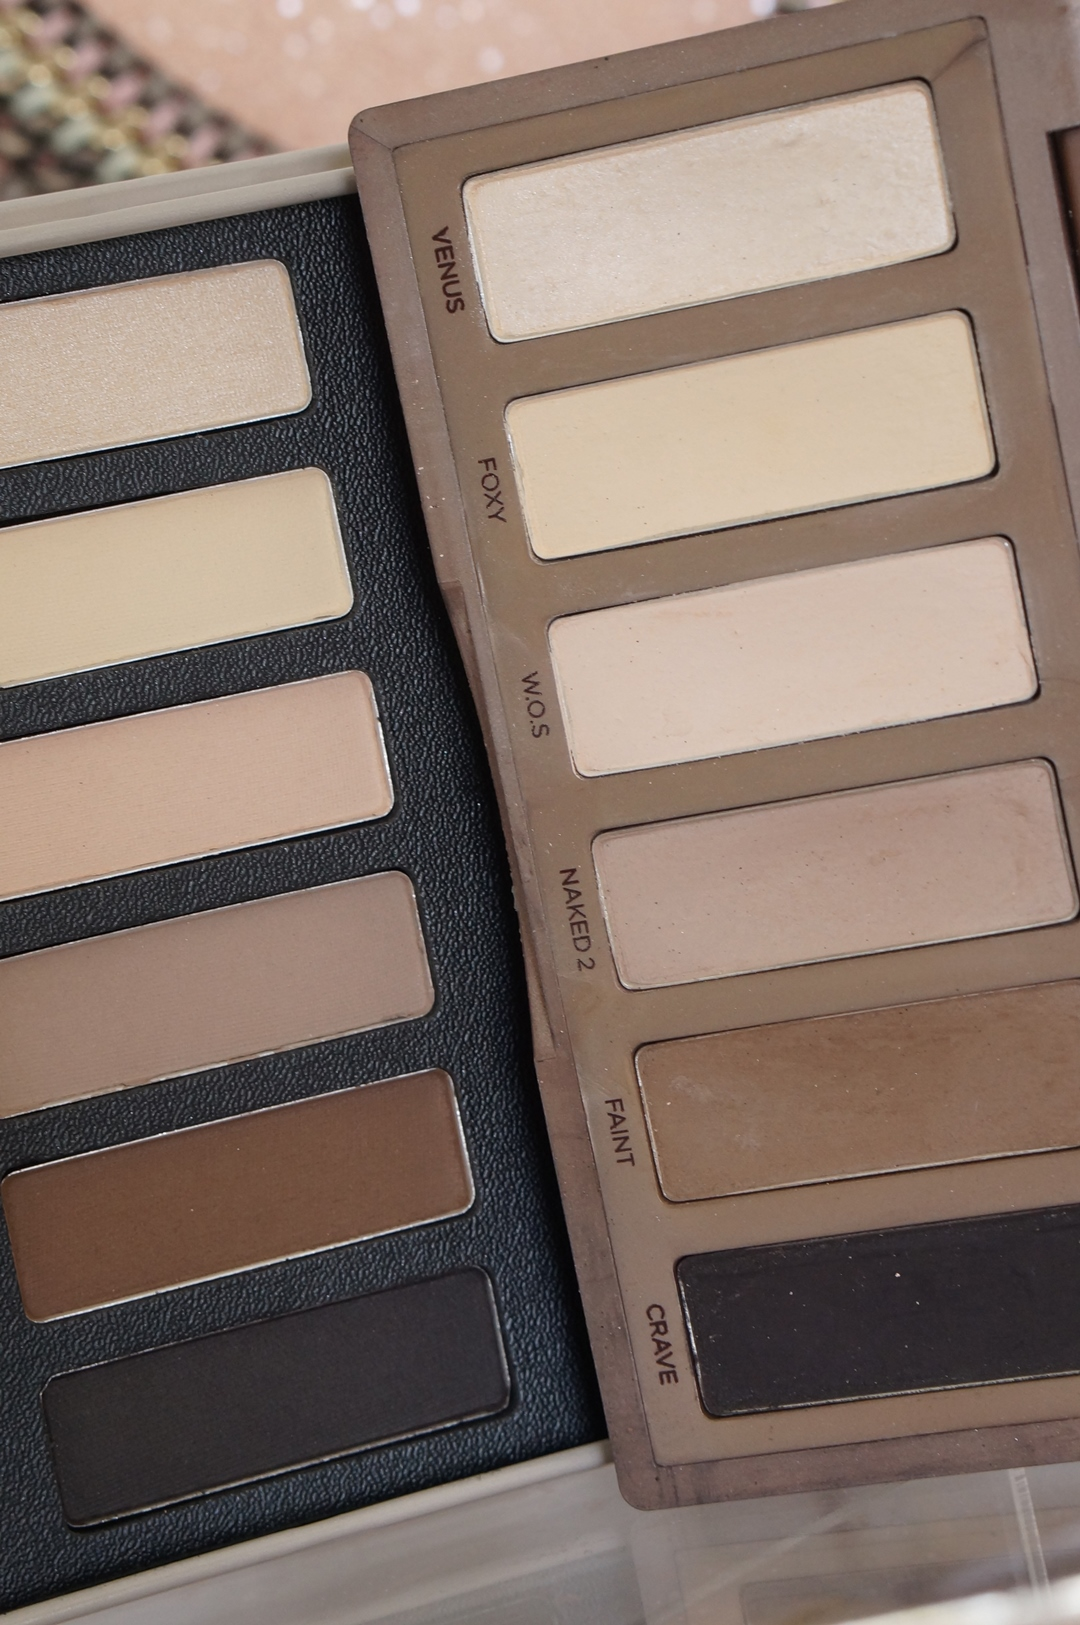 urban-decay-naked-basics-dupe-w7-in-the-city-natural-nudes-eyeshadow-palette-review-swatches (10)